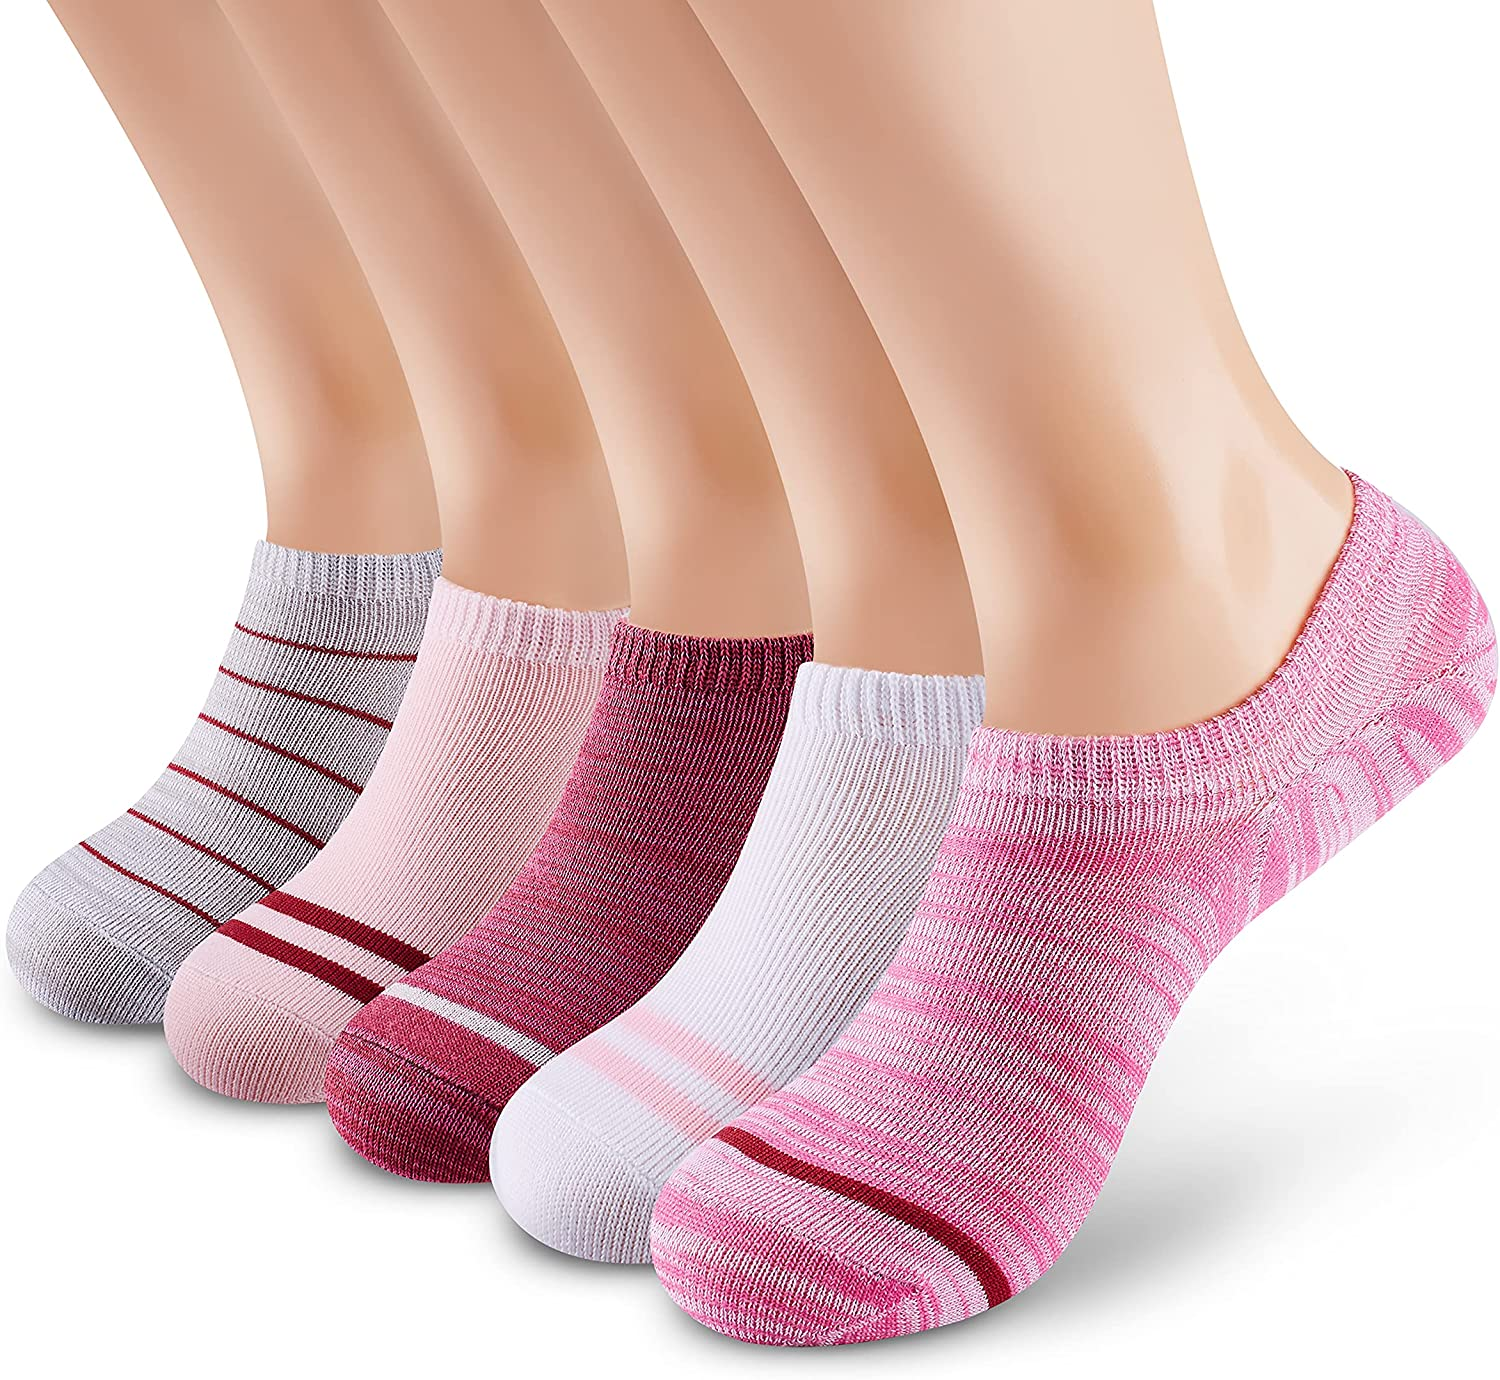 M MONFOOT 5-10 Pairs Slim Fit or Cushion Non-Slip No Show Socks for Men and Women